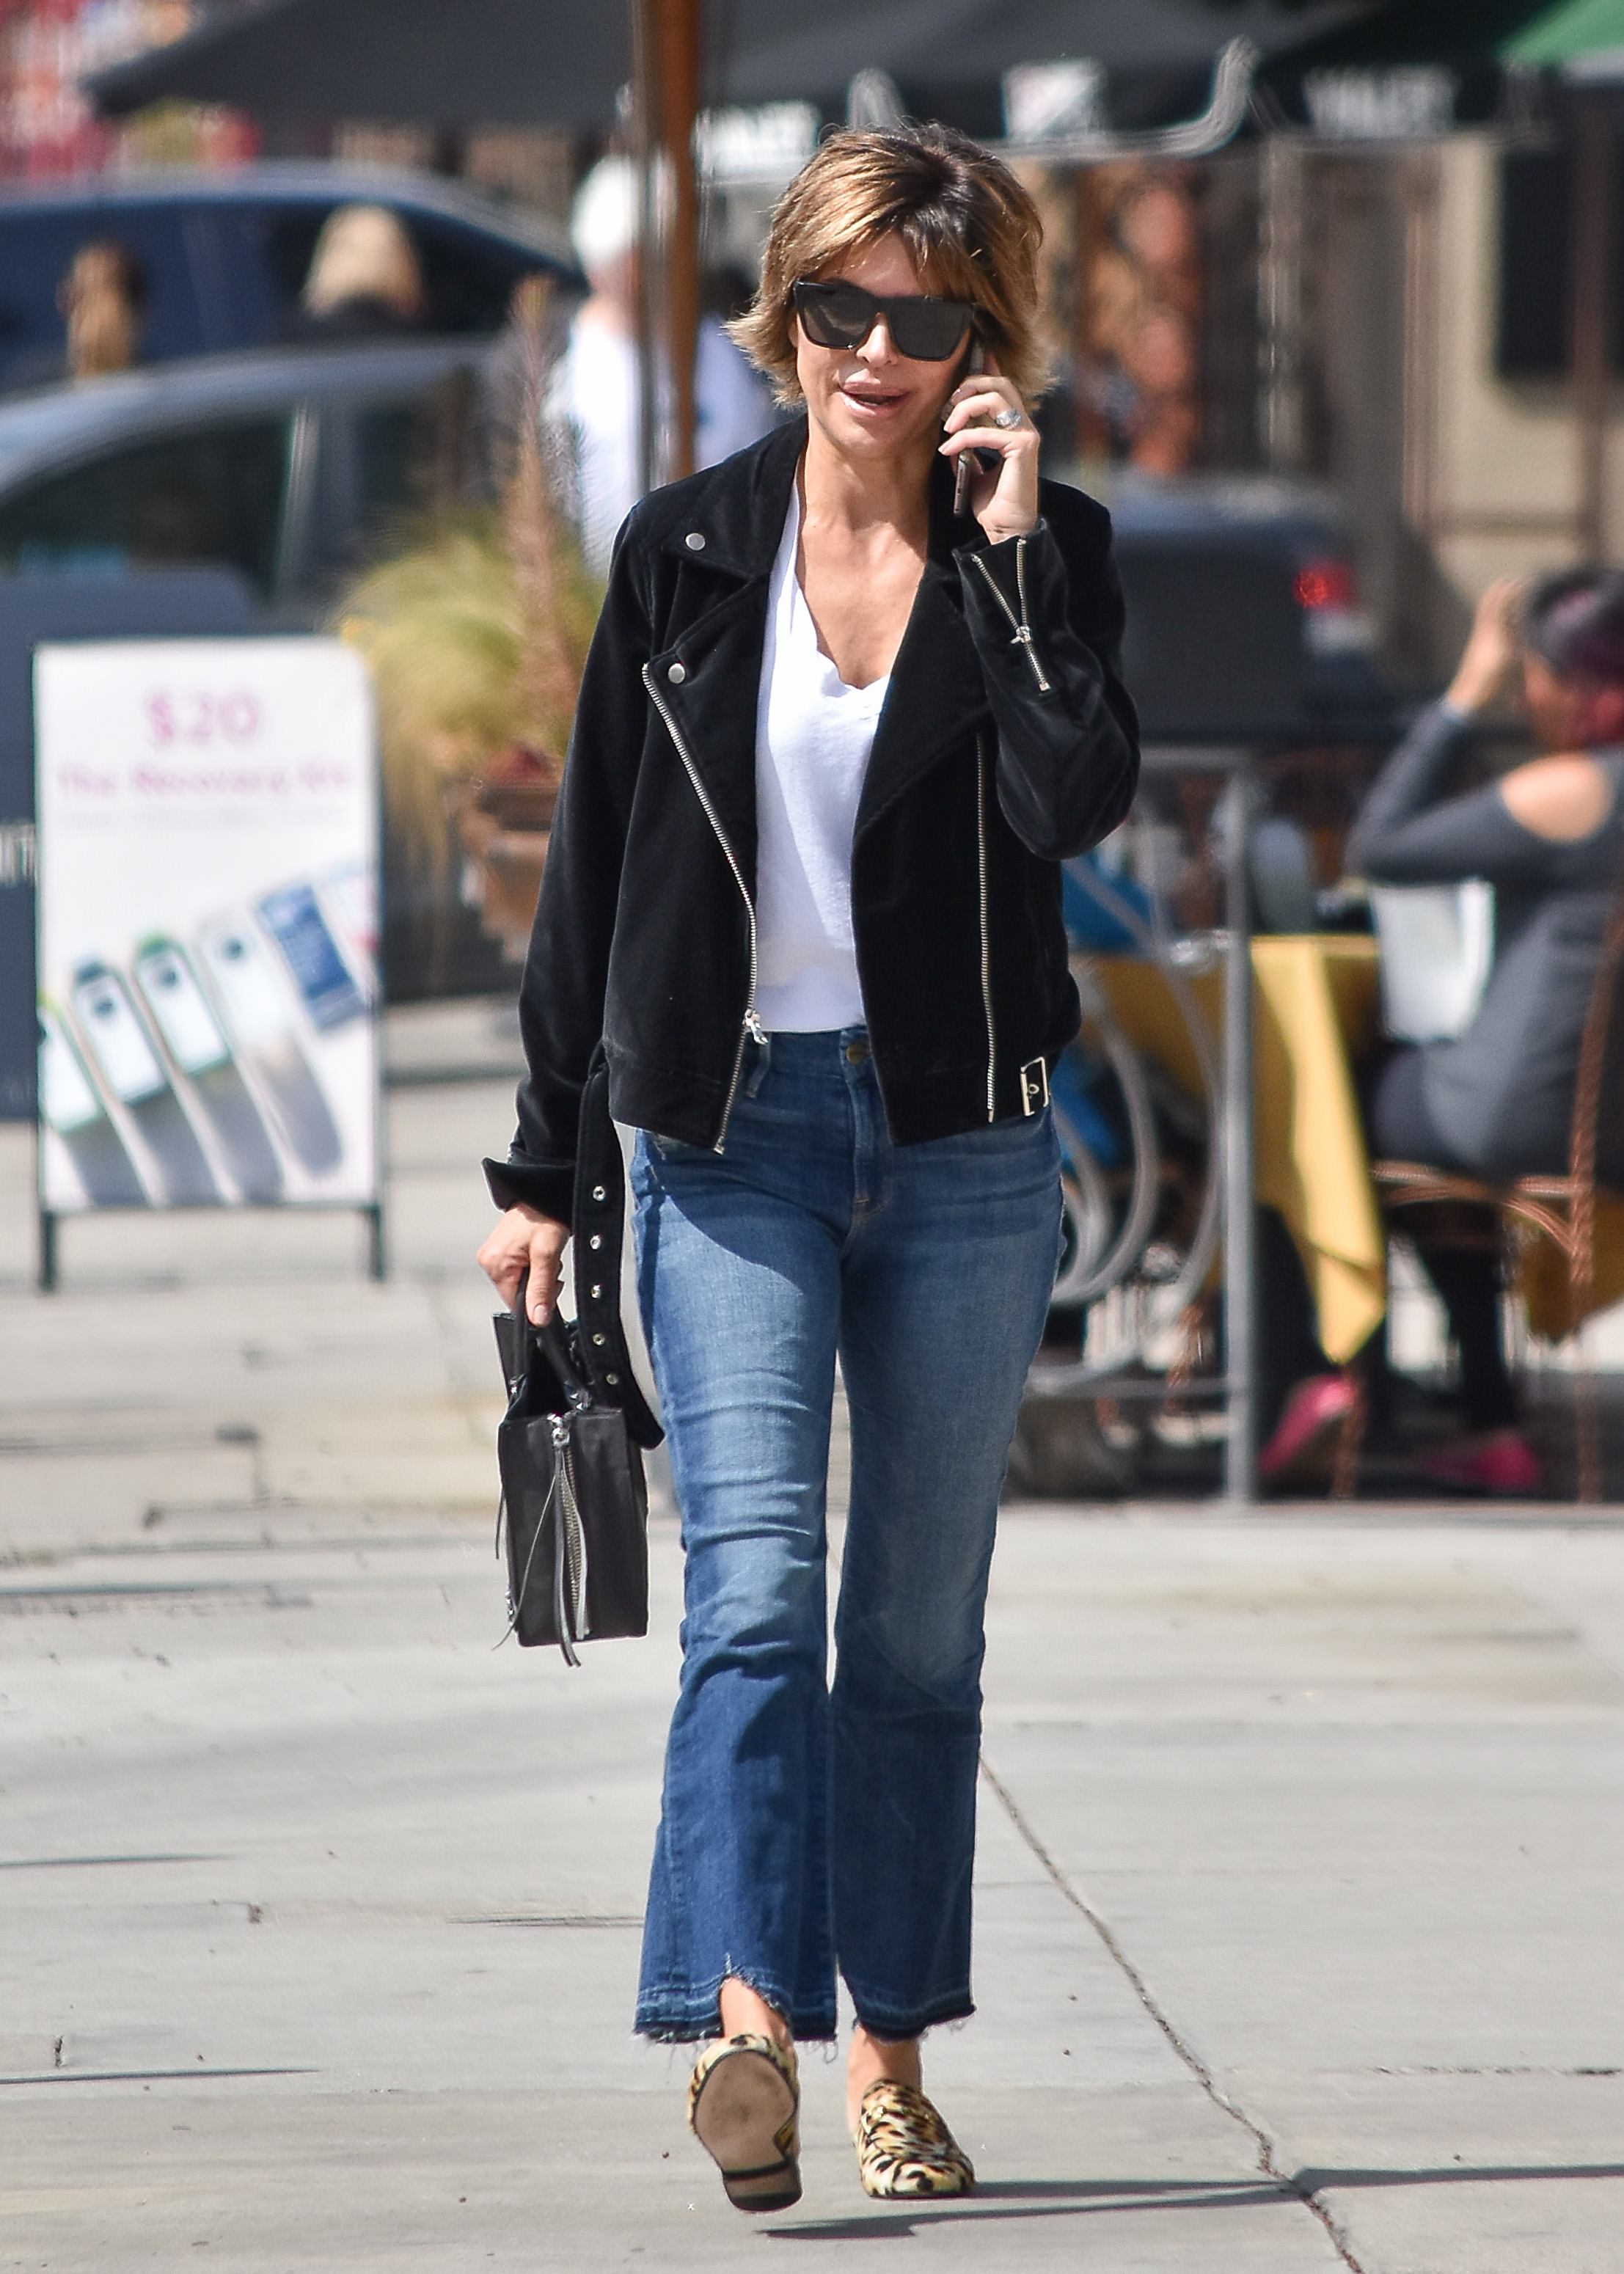 Lisa Rinna spotted out and about in Los Angeles <P> Pictured: Lisa Rinna <B>Ref: SPL1669742  100318  </B><BR/> Picture by: BG015/Bauer Griffin LLC<BR/> </P><P>